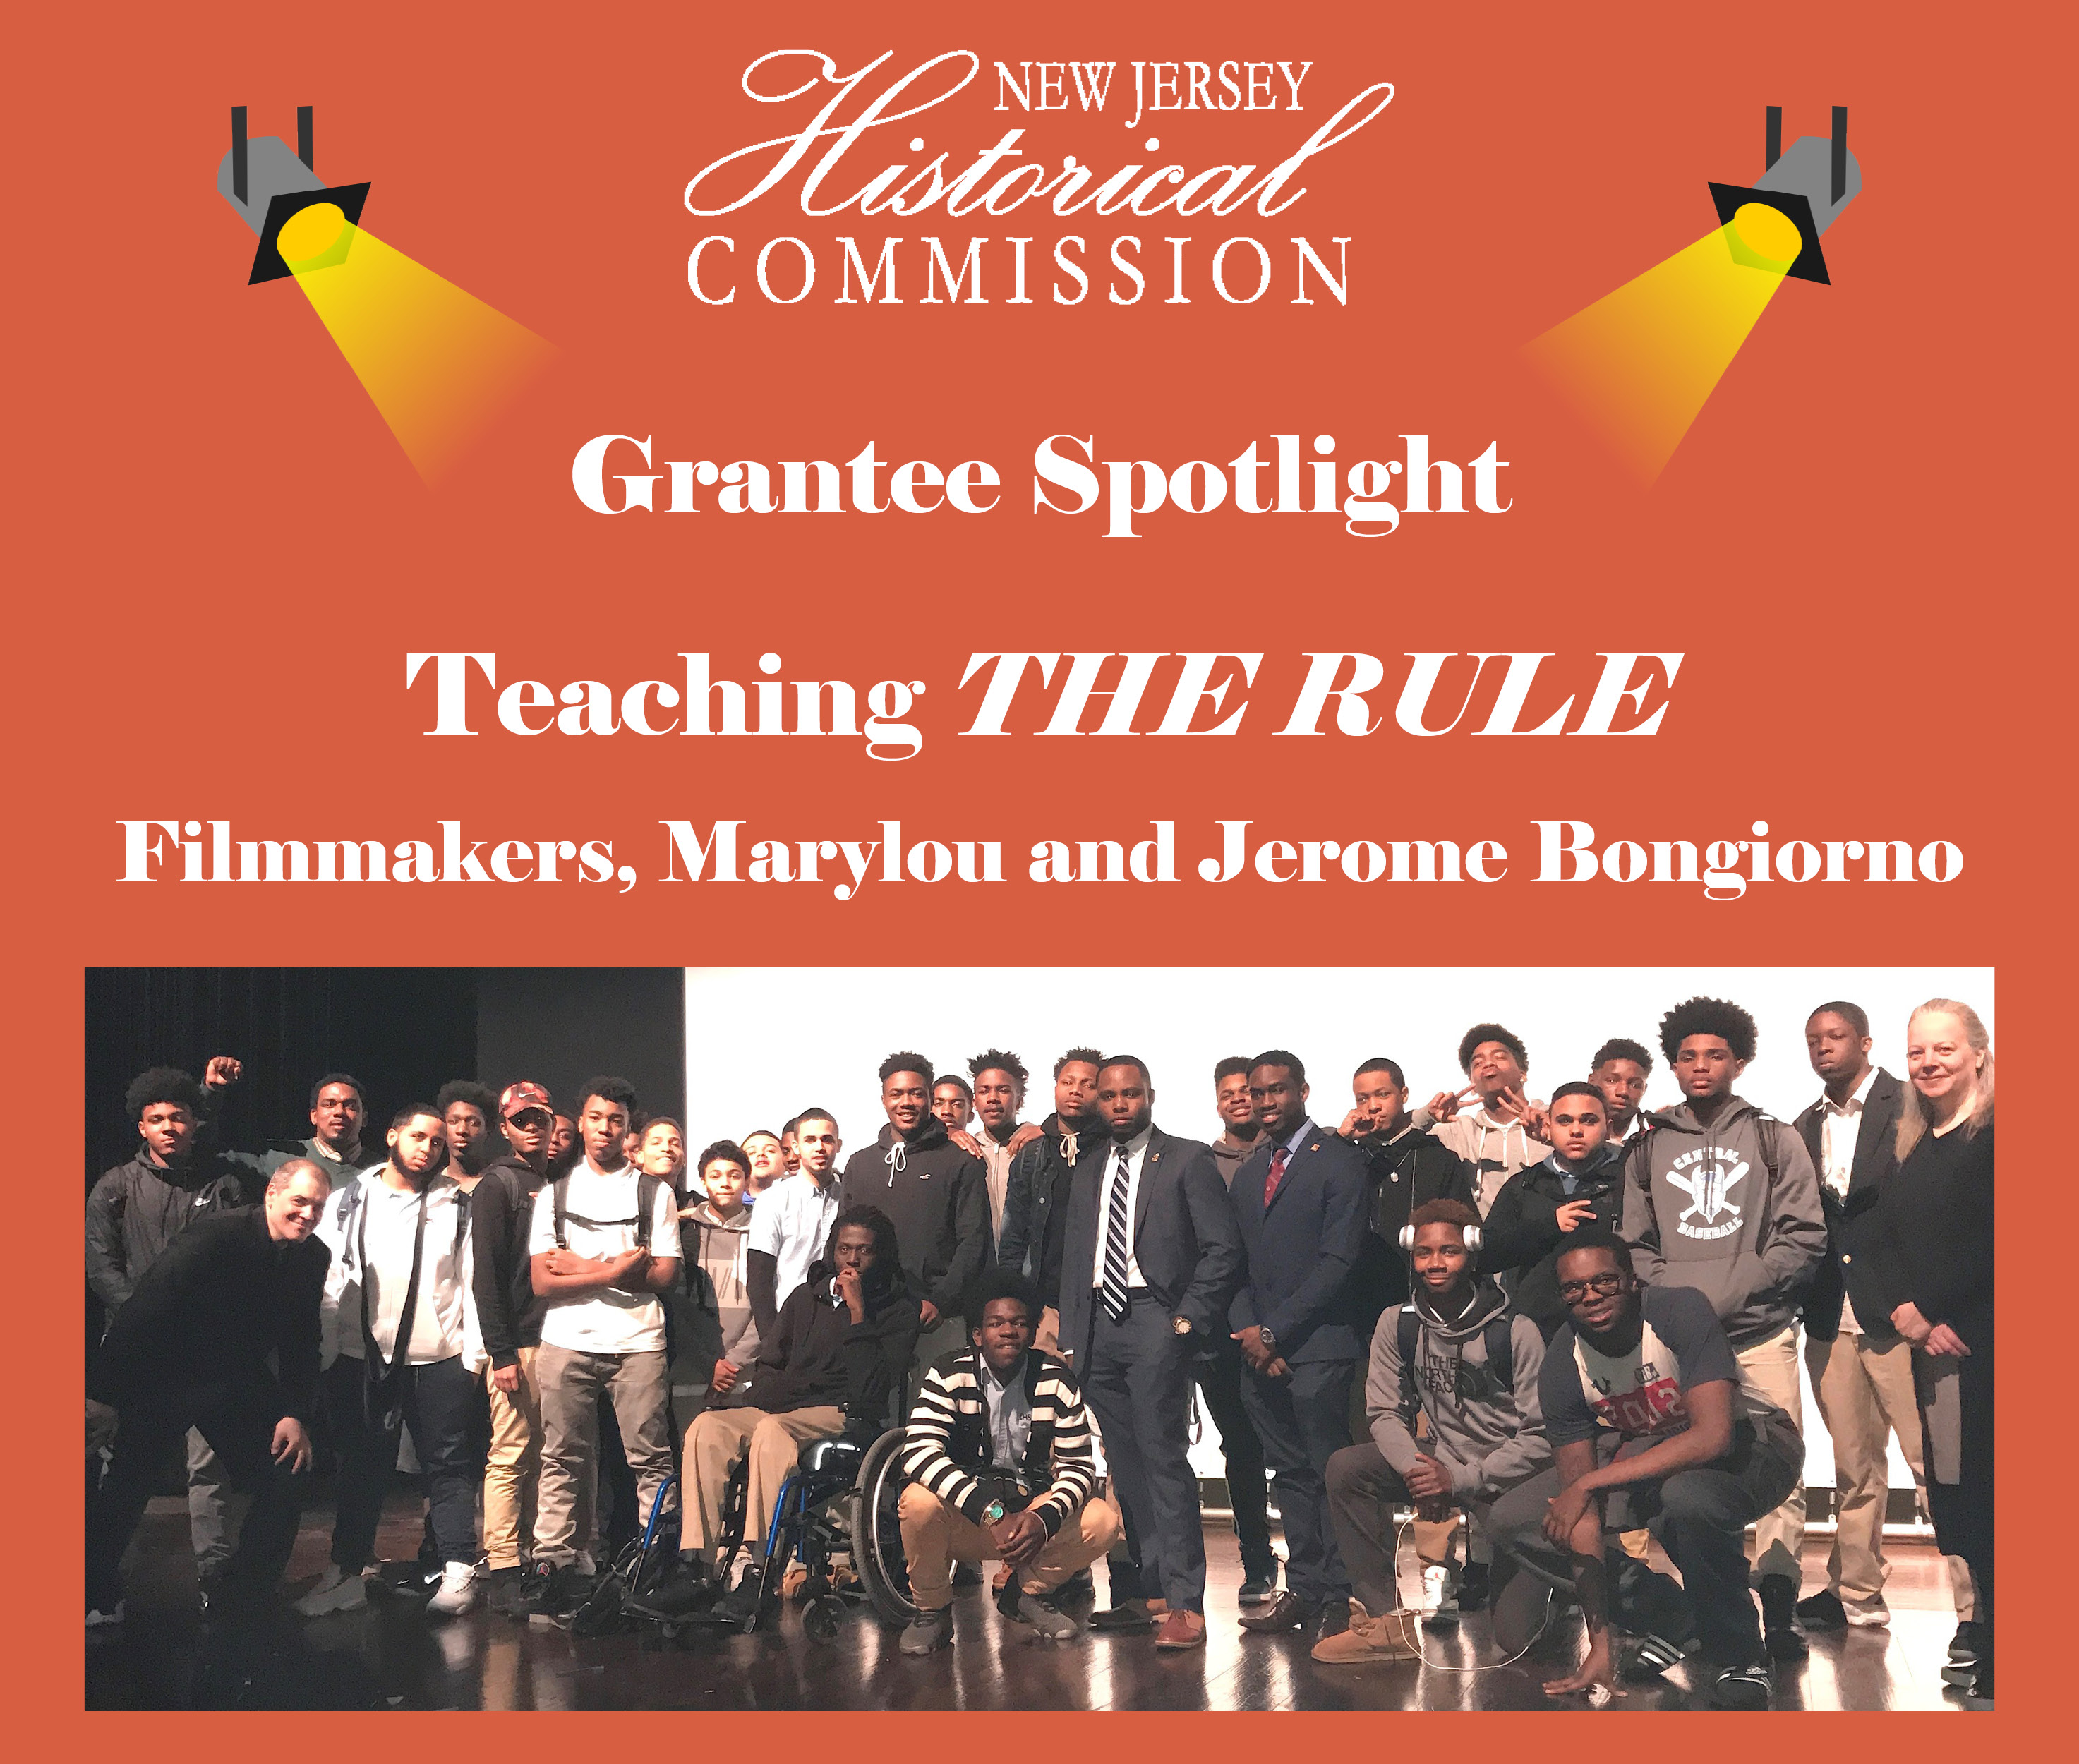 New Jersey Historical Commission (NJHC) Grantee Spotlight: Marylou and Jerome Bongiorno – Teaching THE RULE